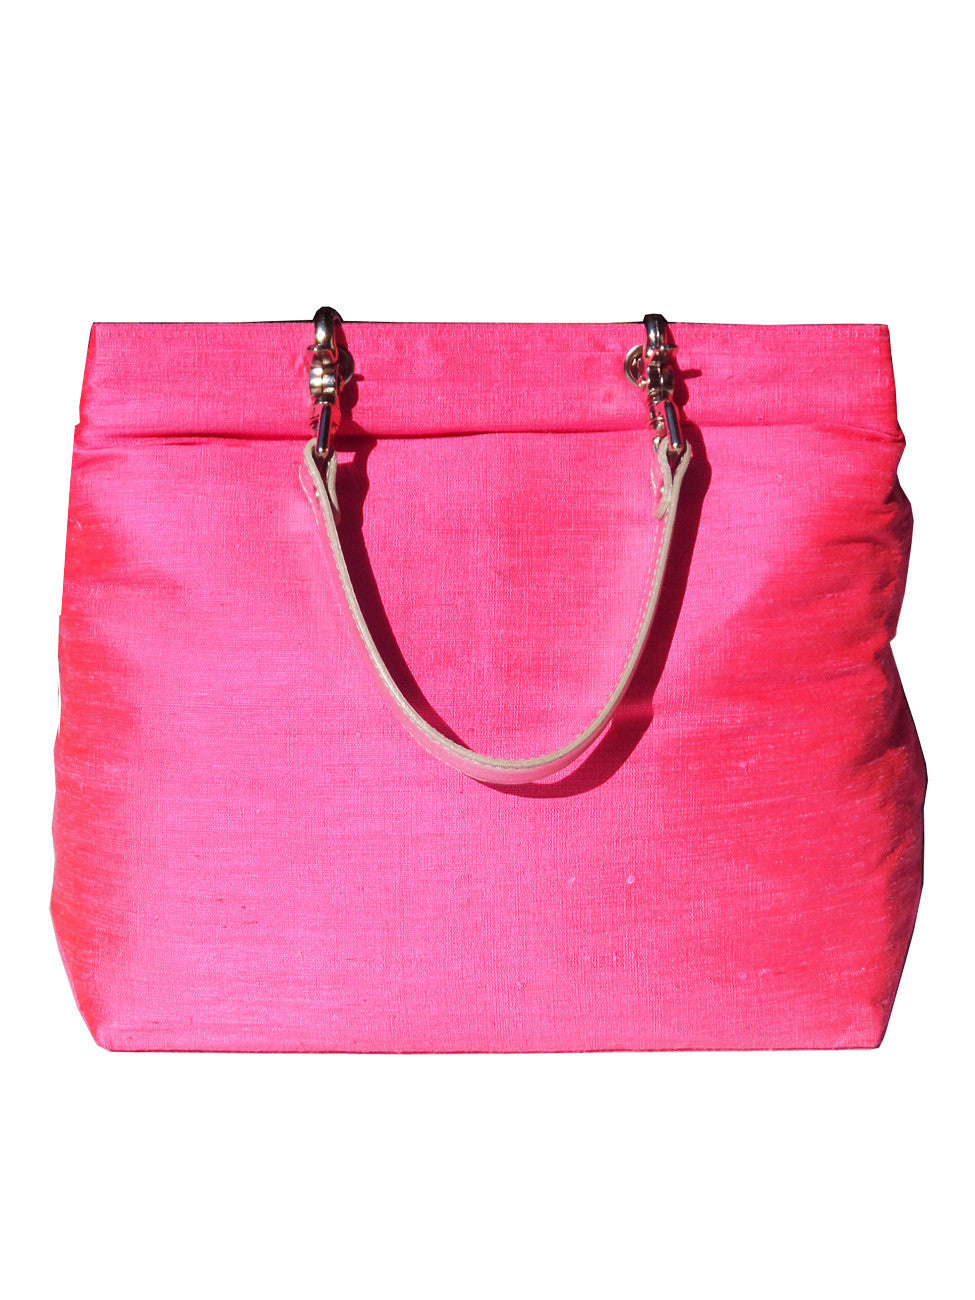 Silk Tote Bags In Assorted Colors